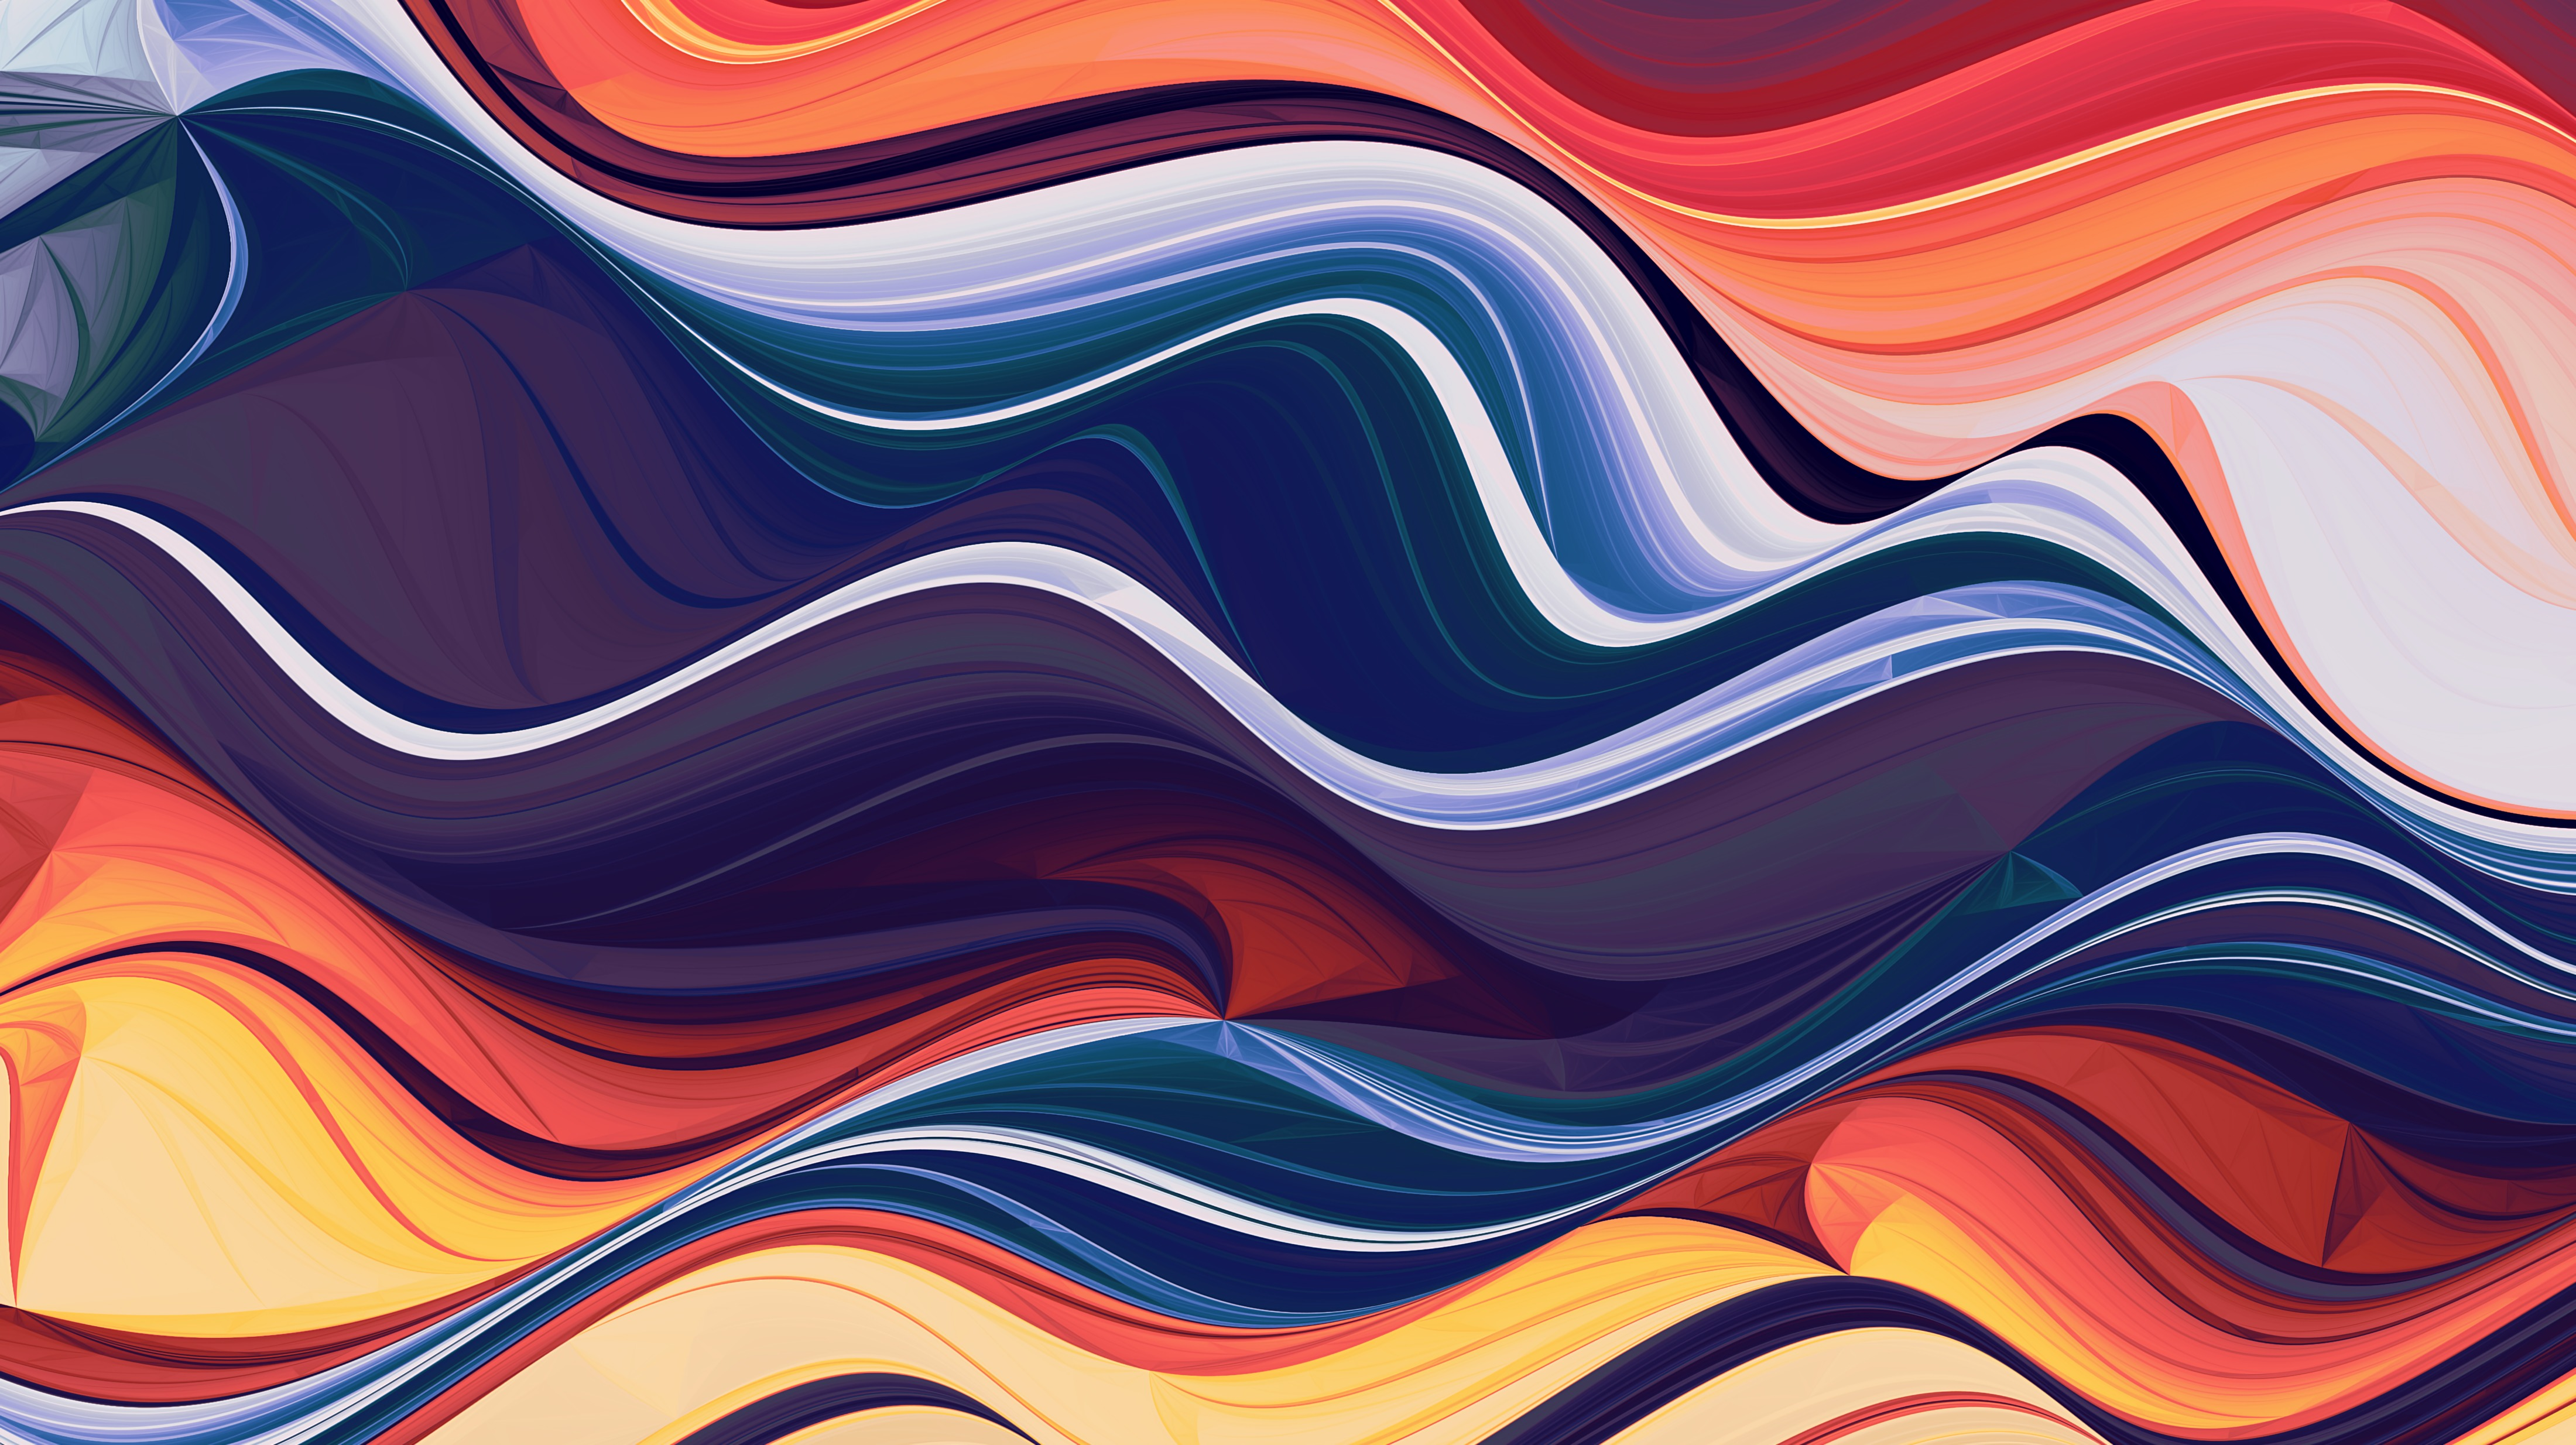 134459 download wallpaper Abstract, Multicolored, Motley, Lines, Waves screensavers and pictures for free